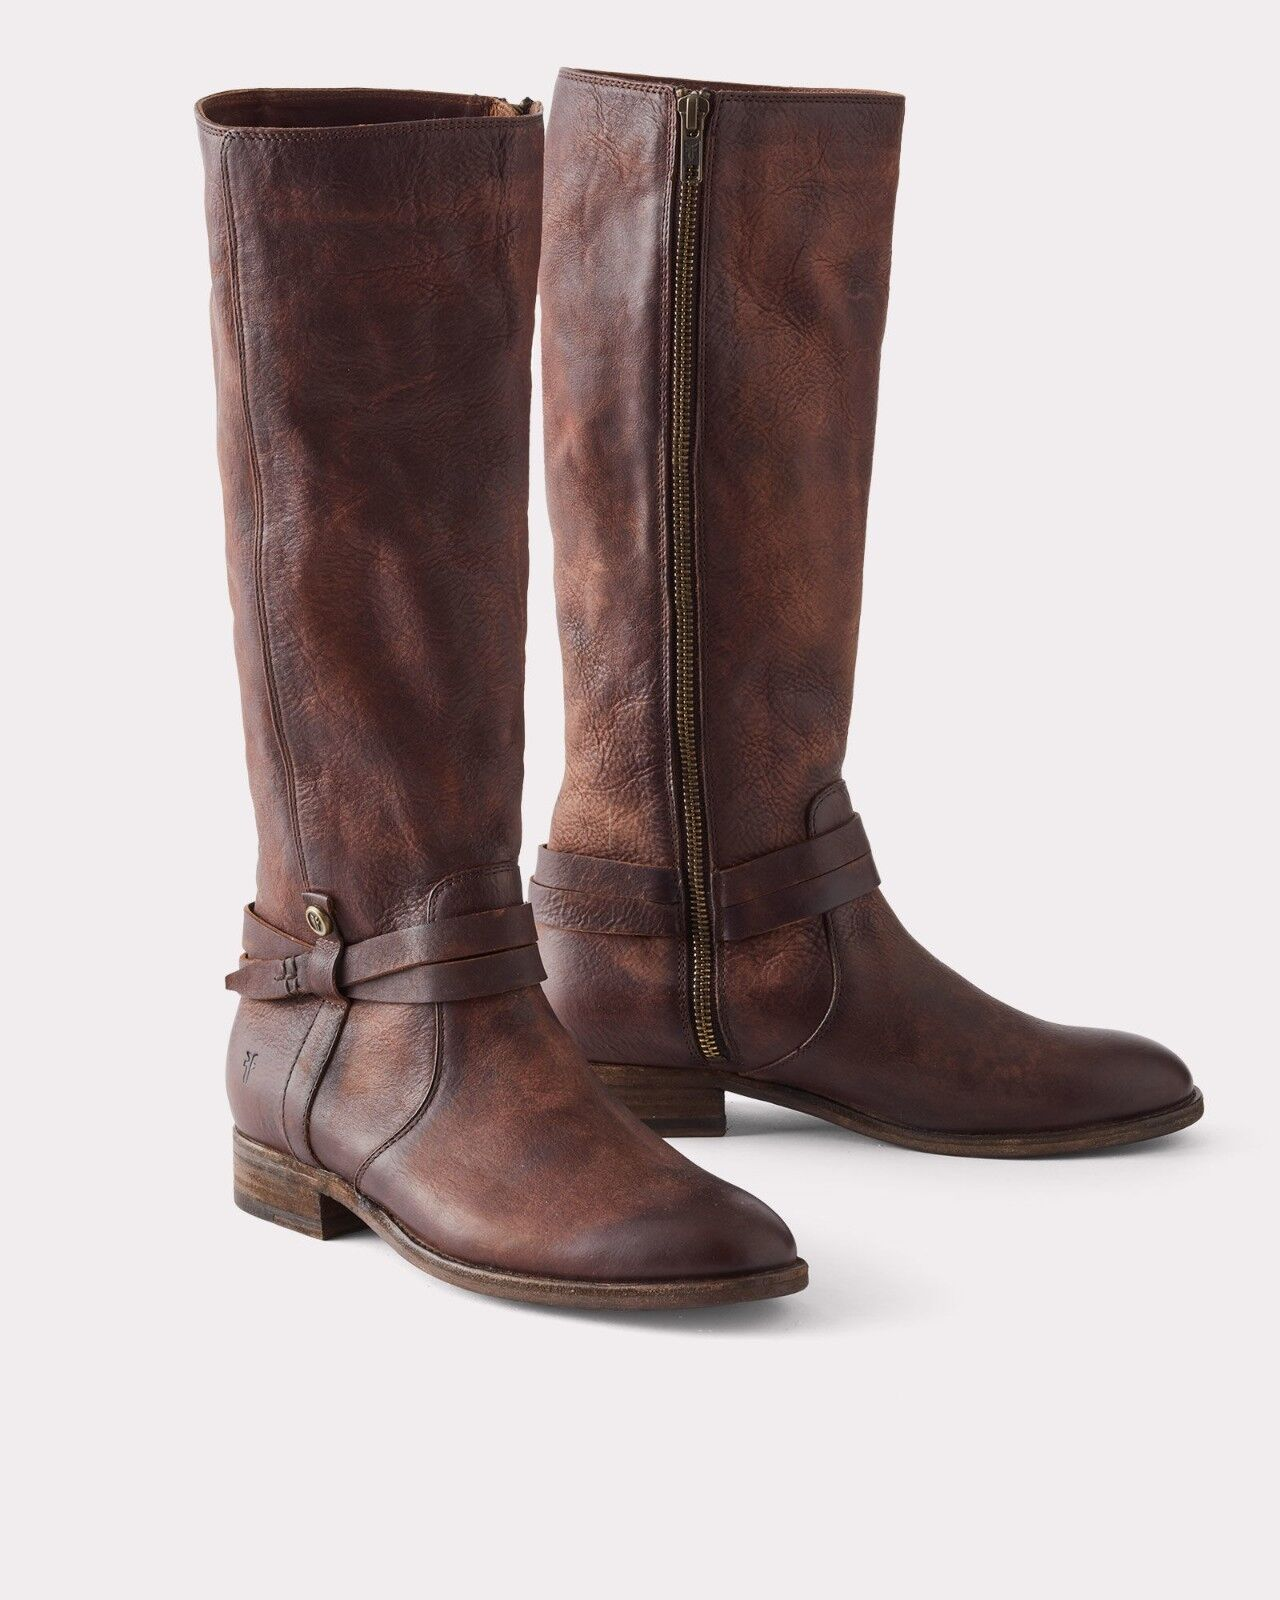 FRYE MELISSA BELTED TALL BOOTS REDWOOD 70500 EXTENDED CALF